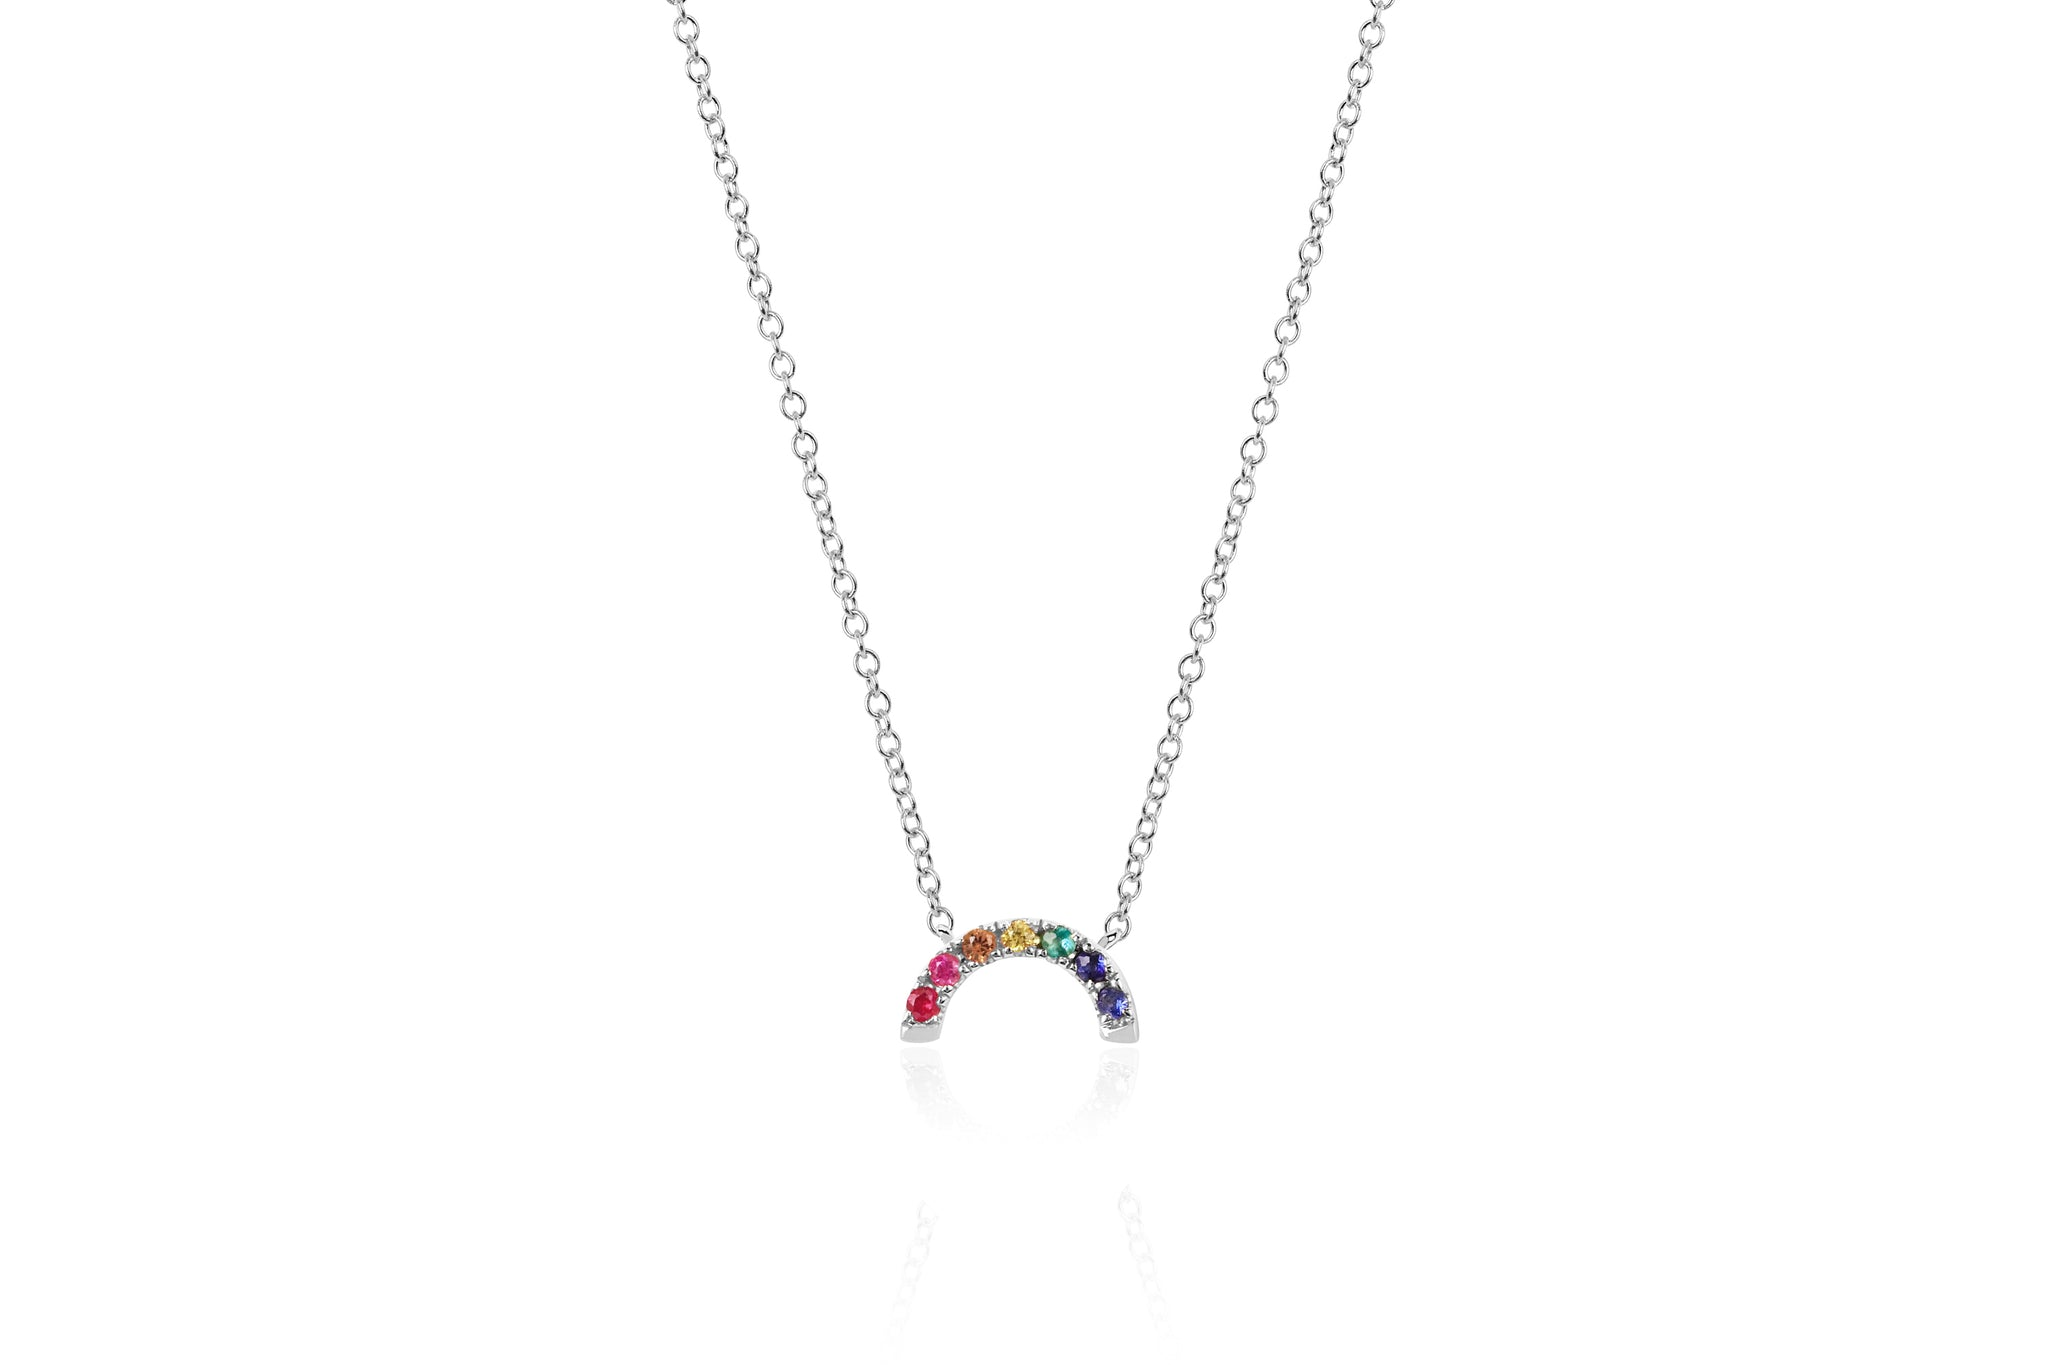 rainbow necklace estella bartlett product